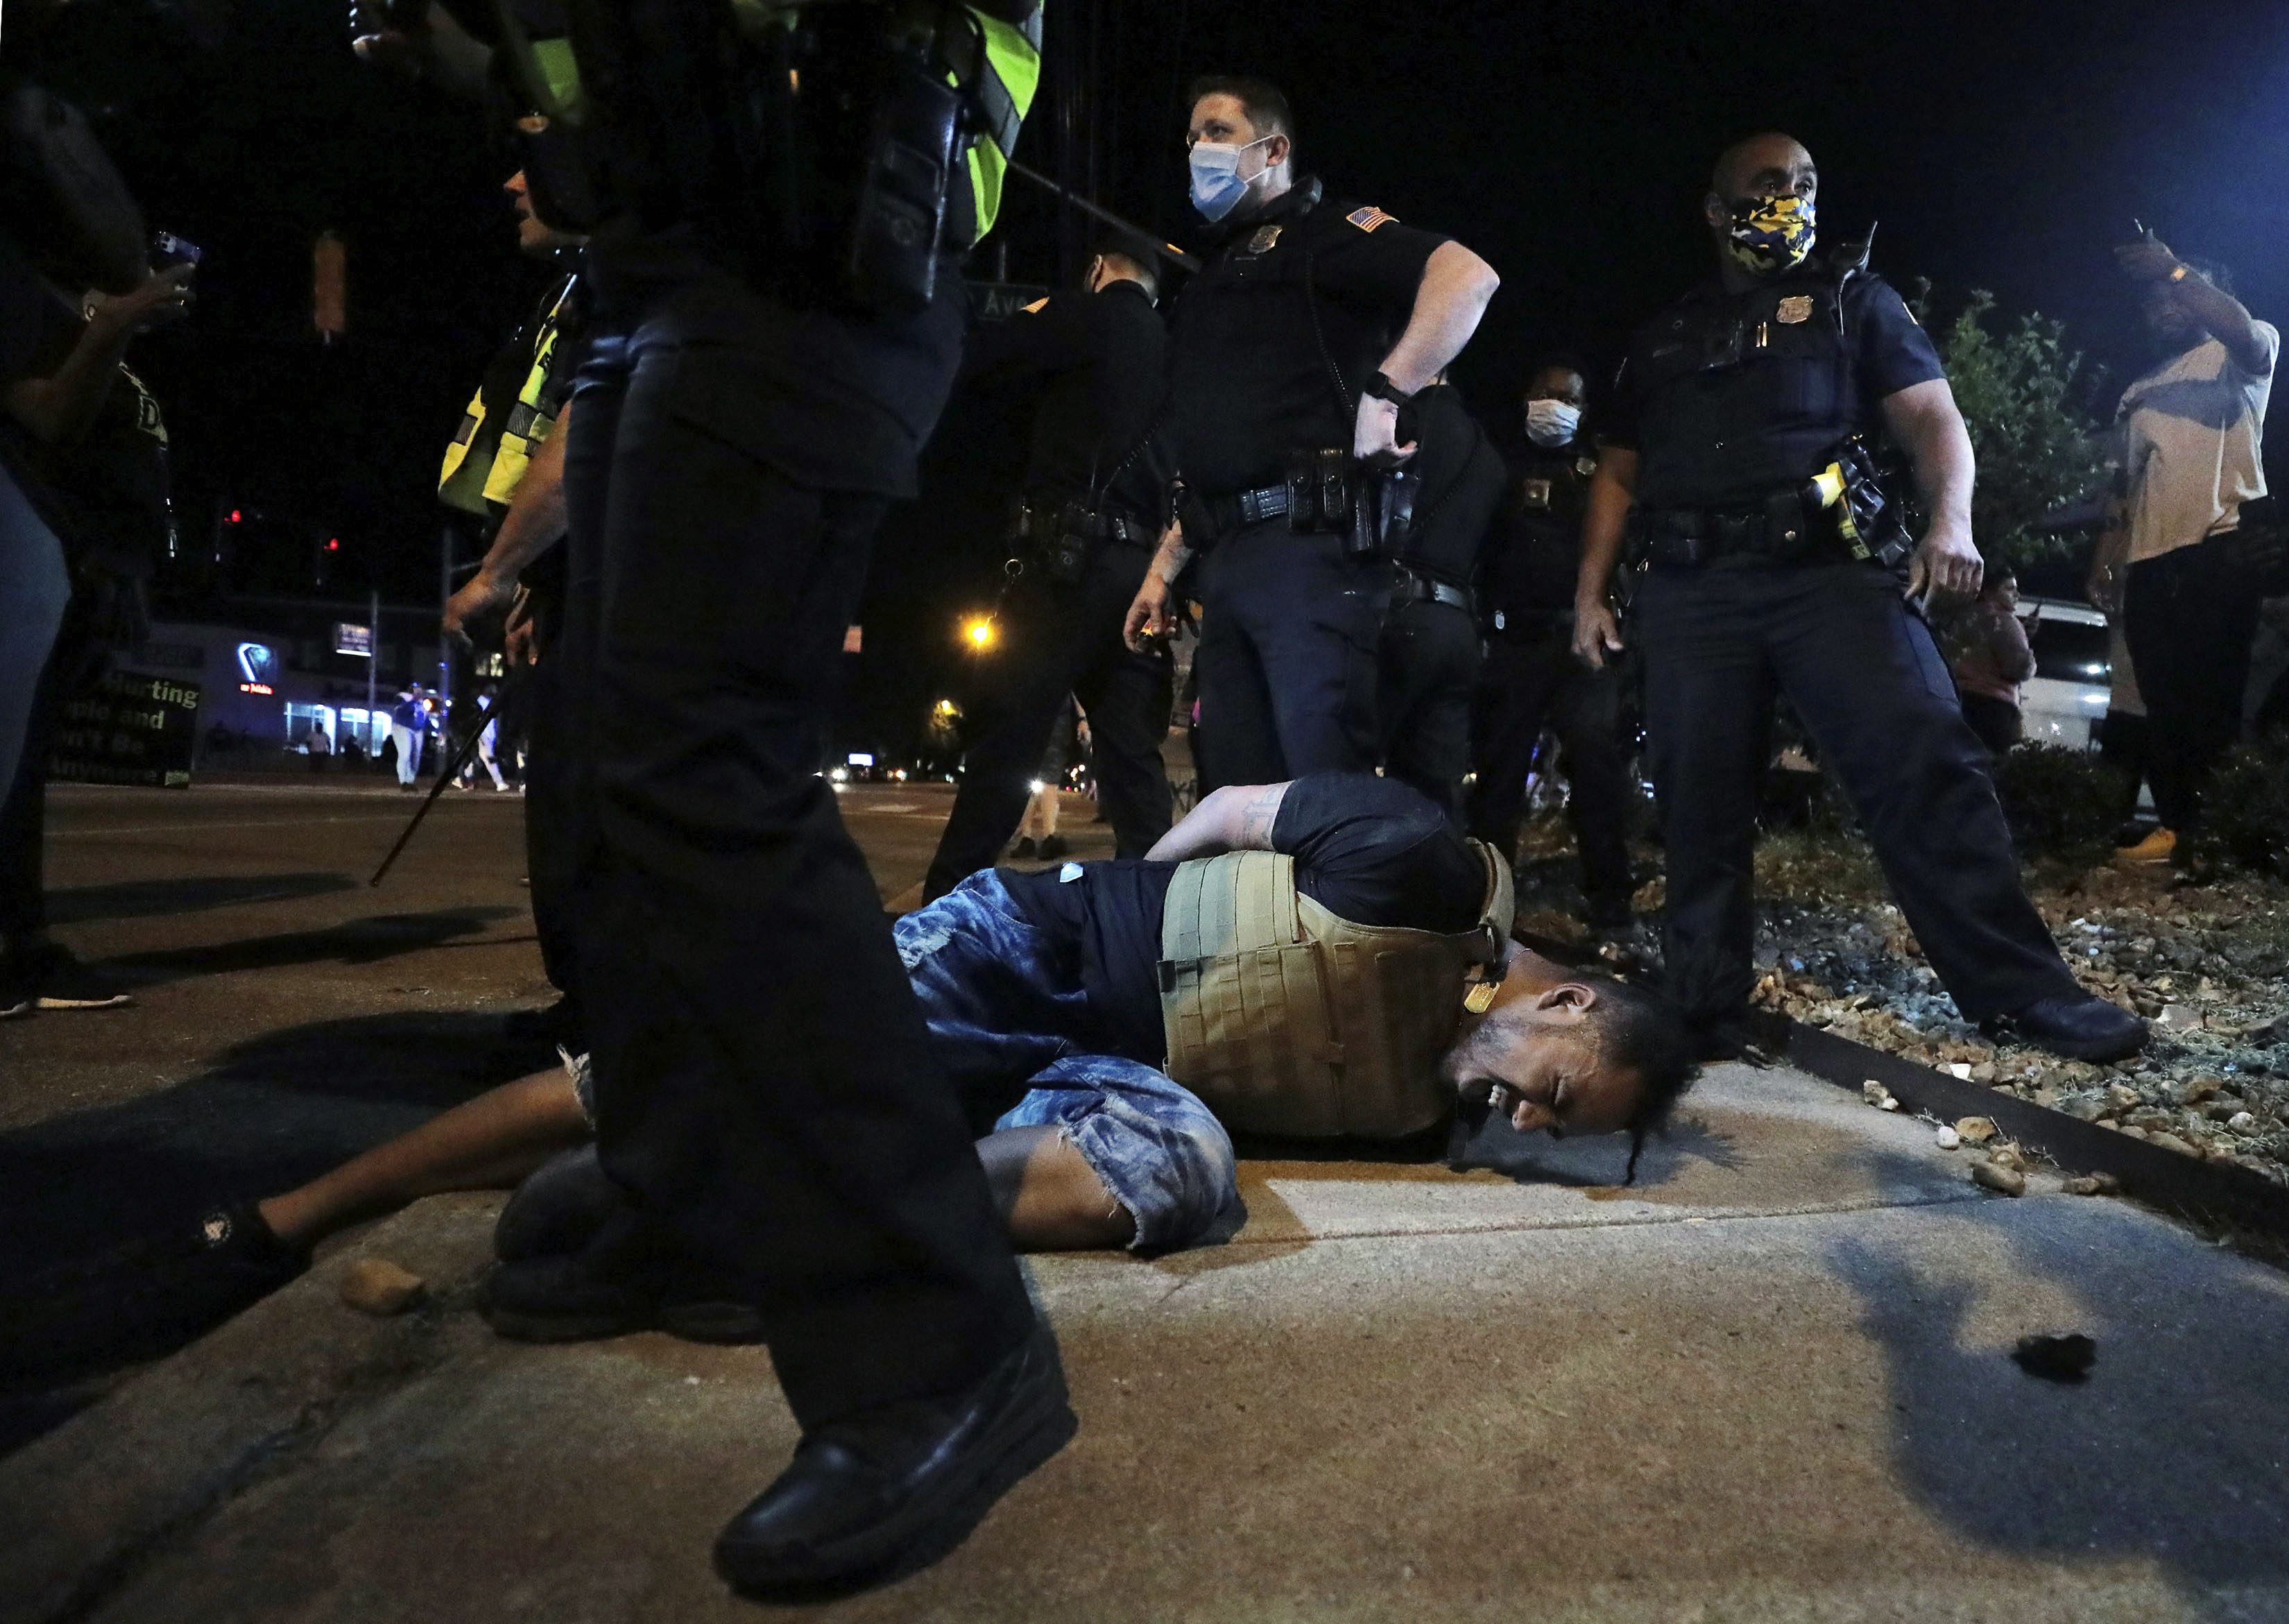 A person winces in pain after being pepper sprayed by police during a protest in Memphis, Tennessee, on May 28.